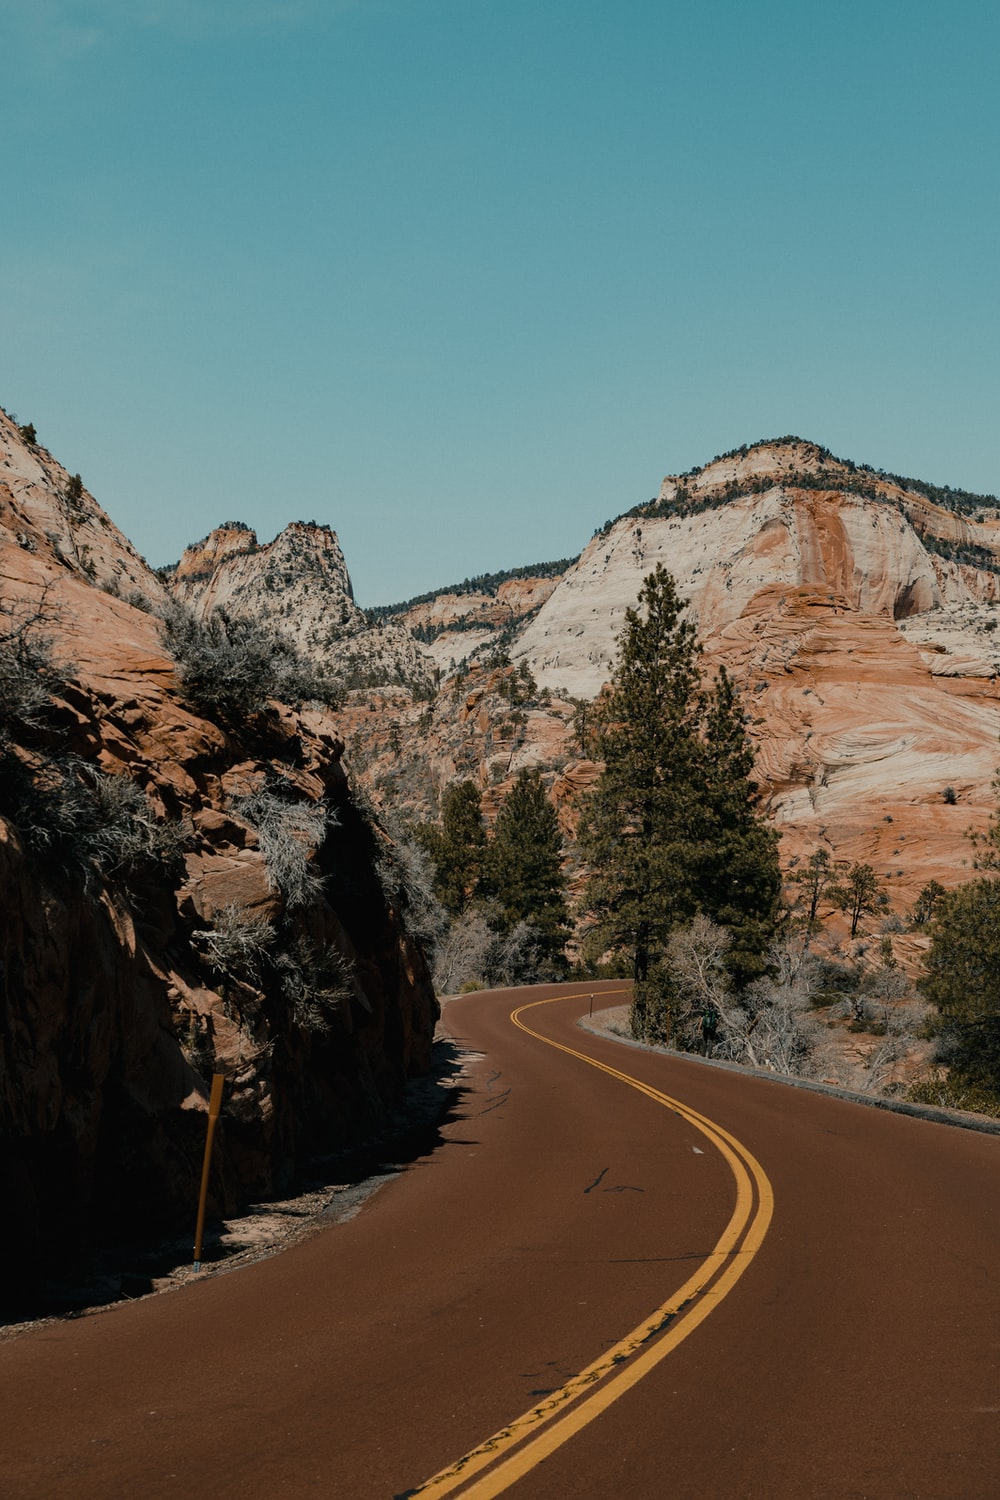 gray asphalt road between brown rocky mountain during daytime